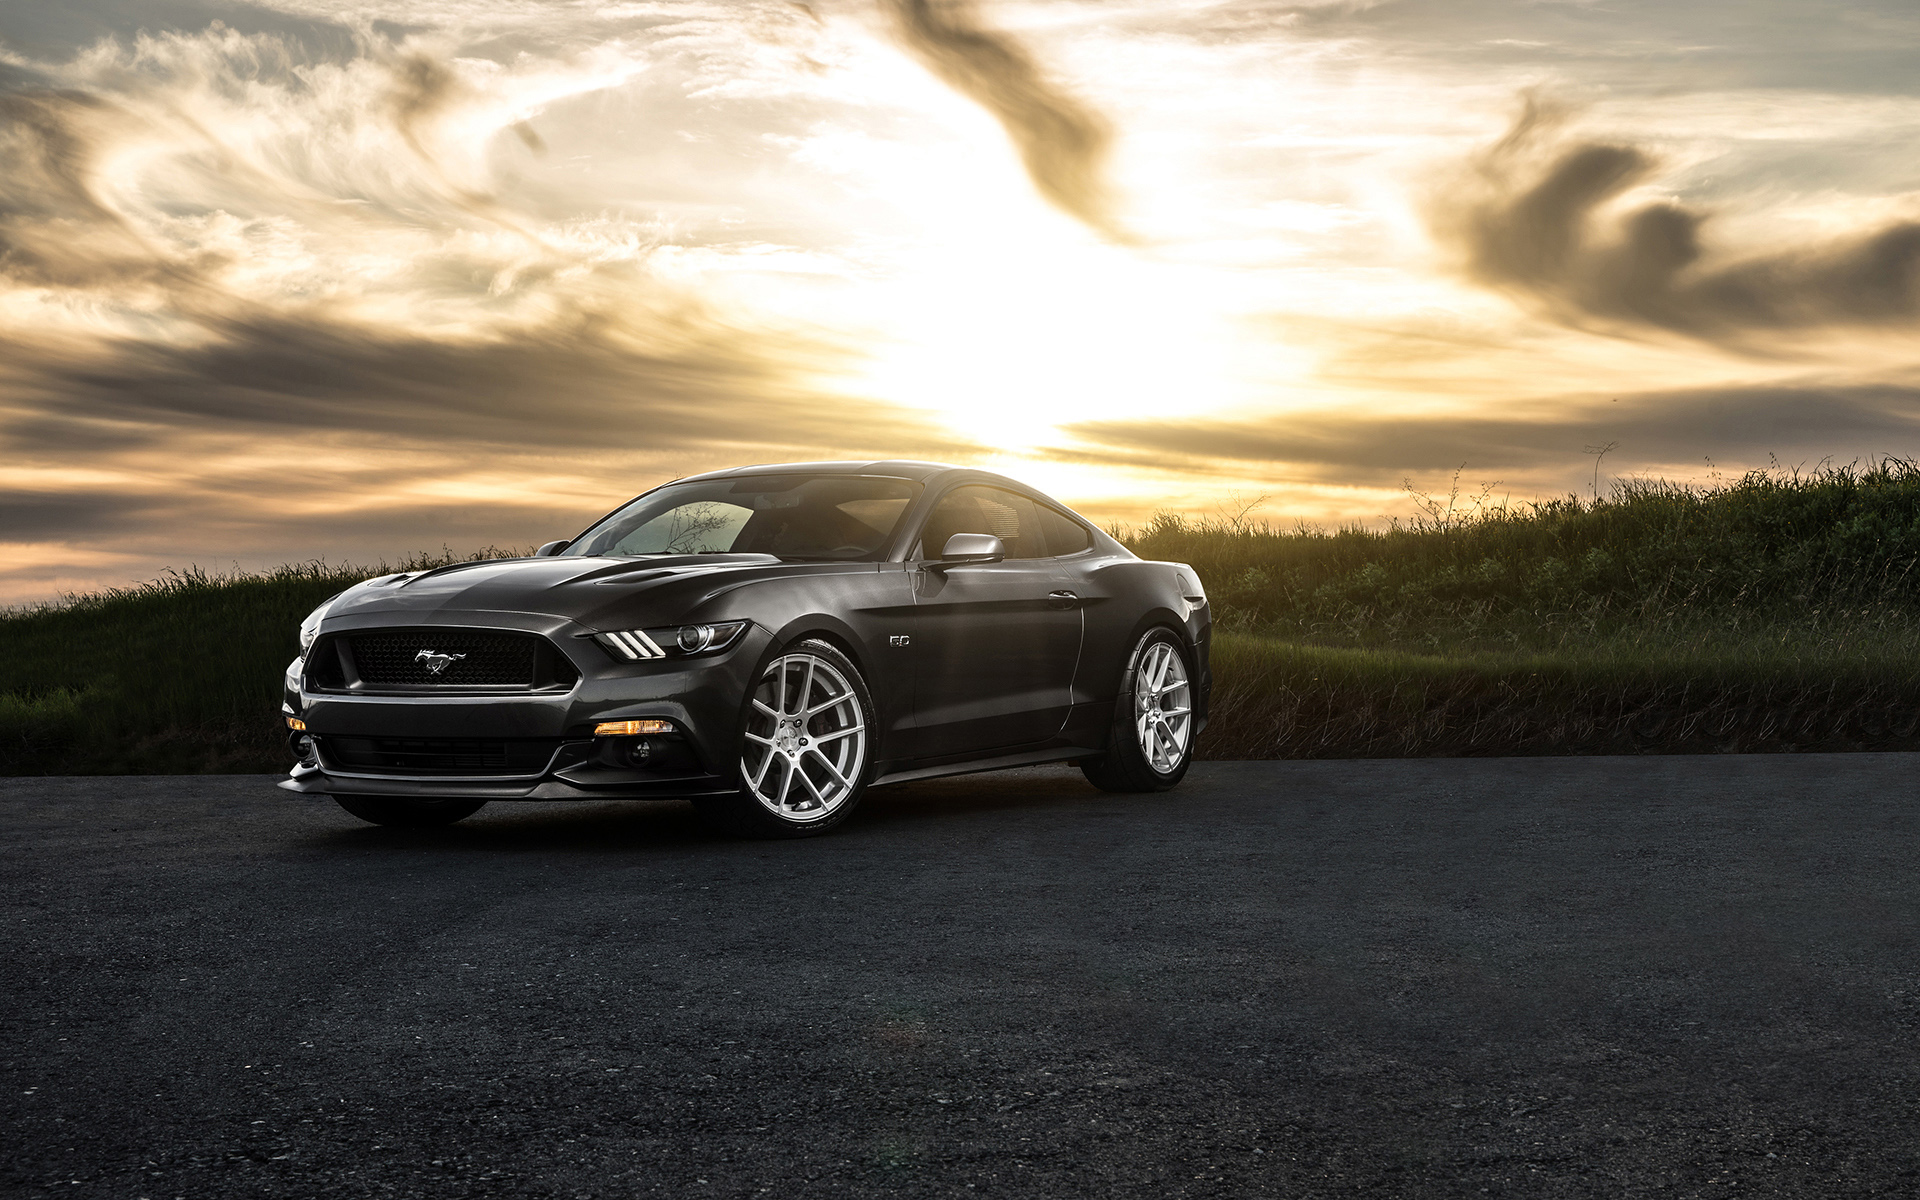 ford mustang 2015 avant garde wide1 - Rent a Car Iran   Cheapest Car Hire in Tehran